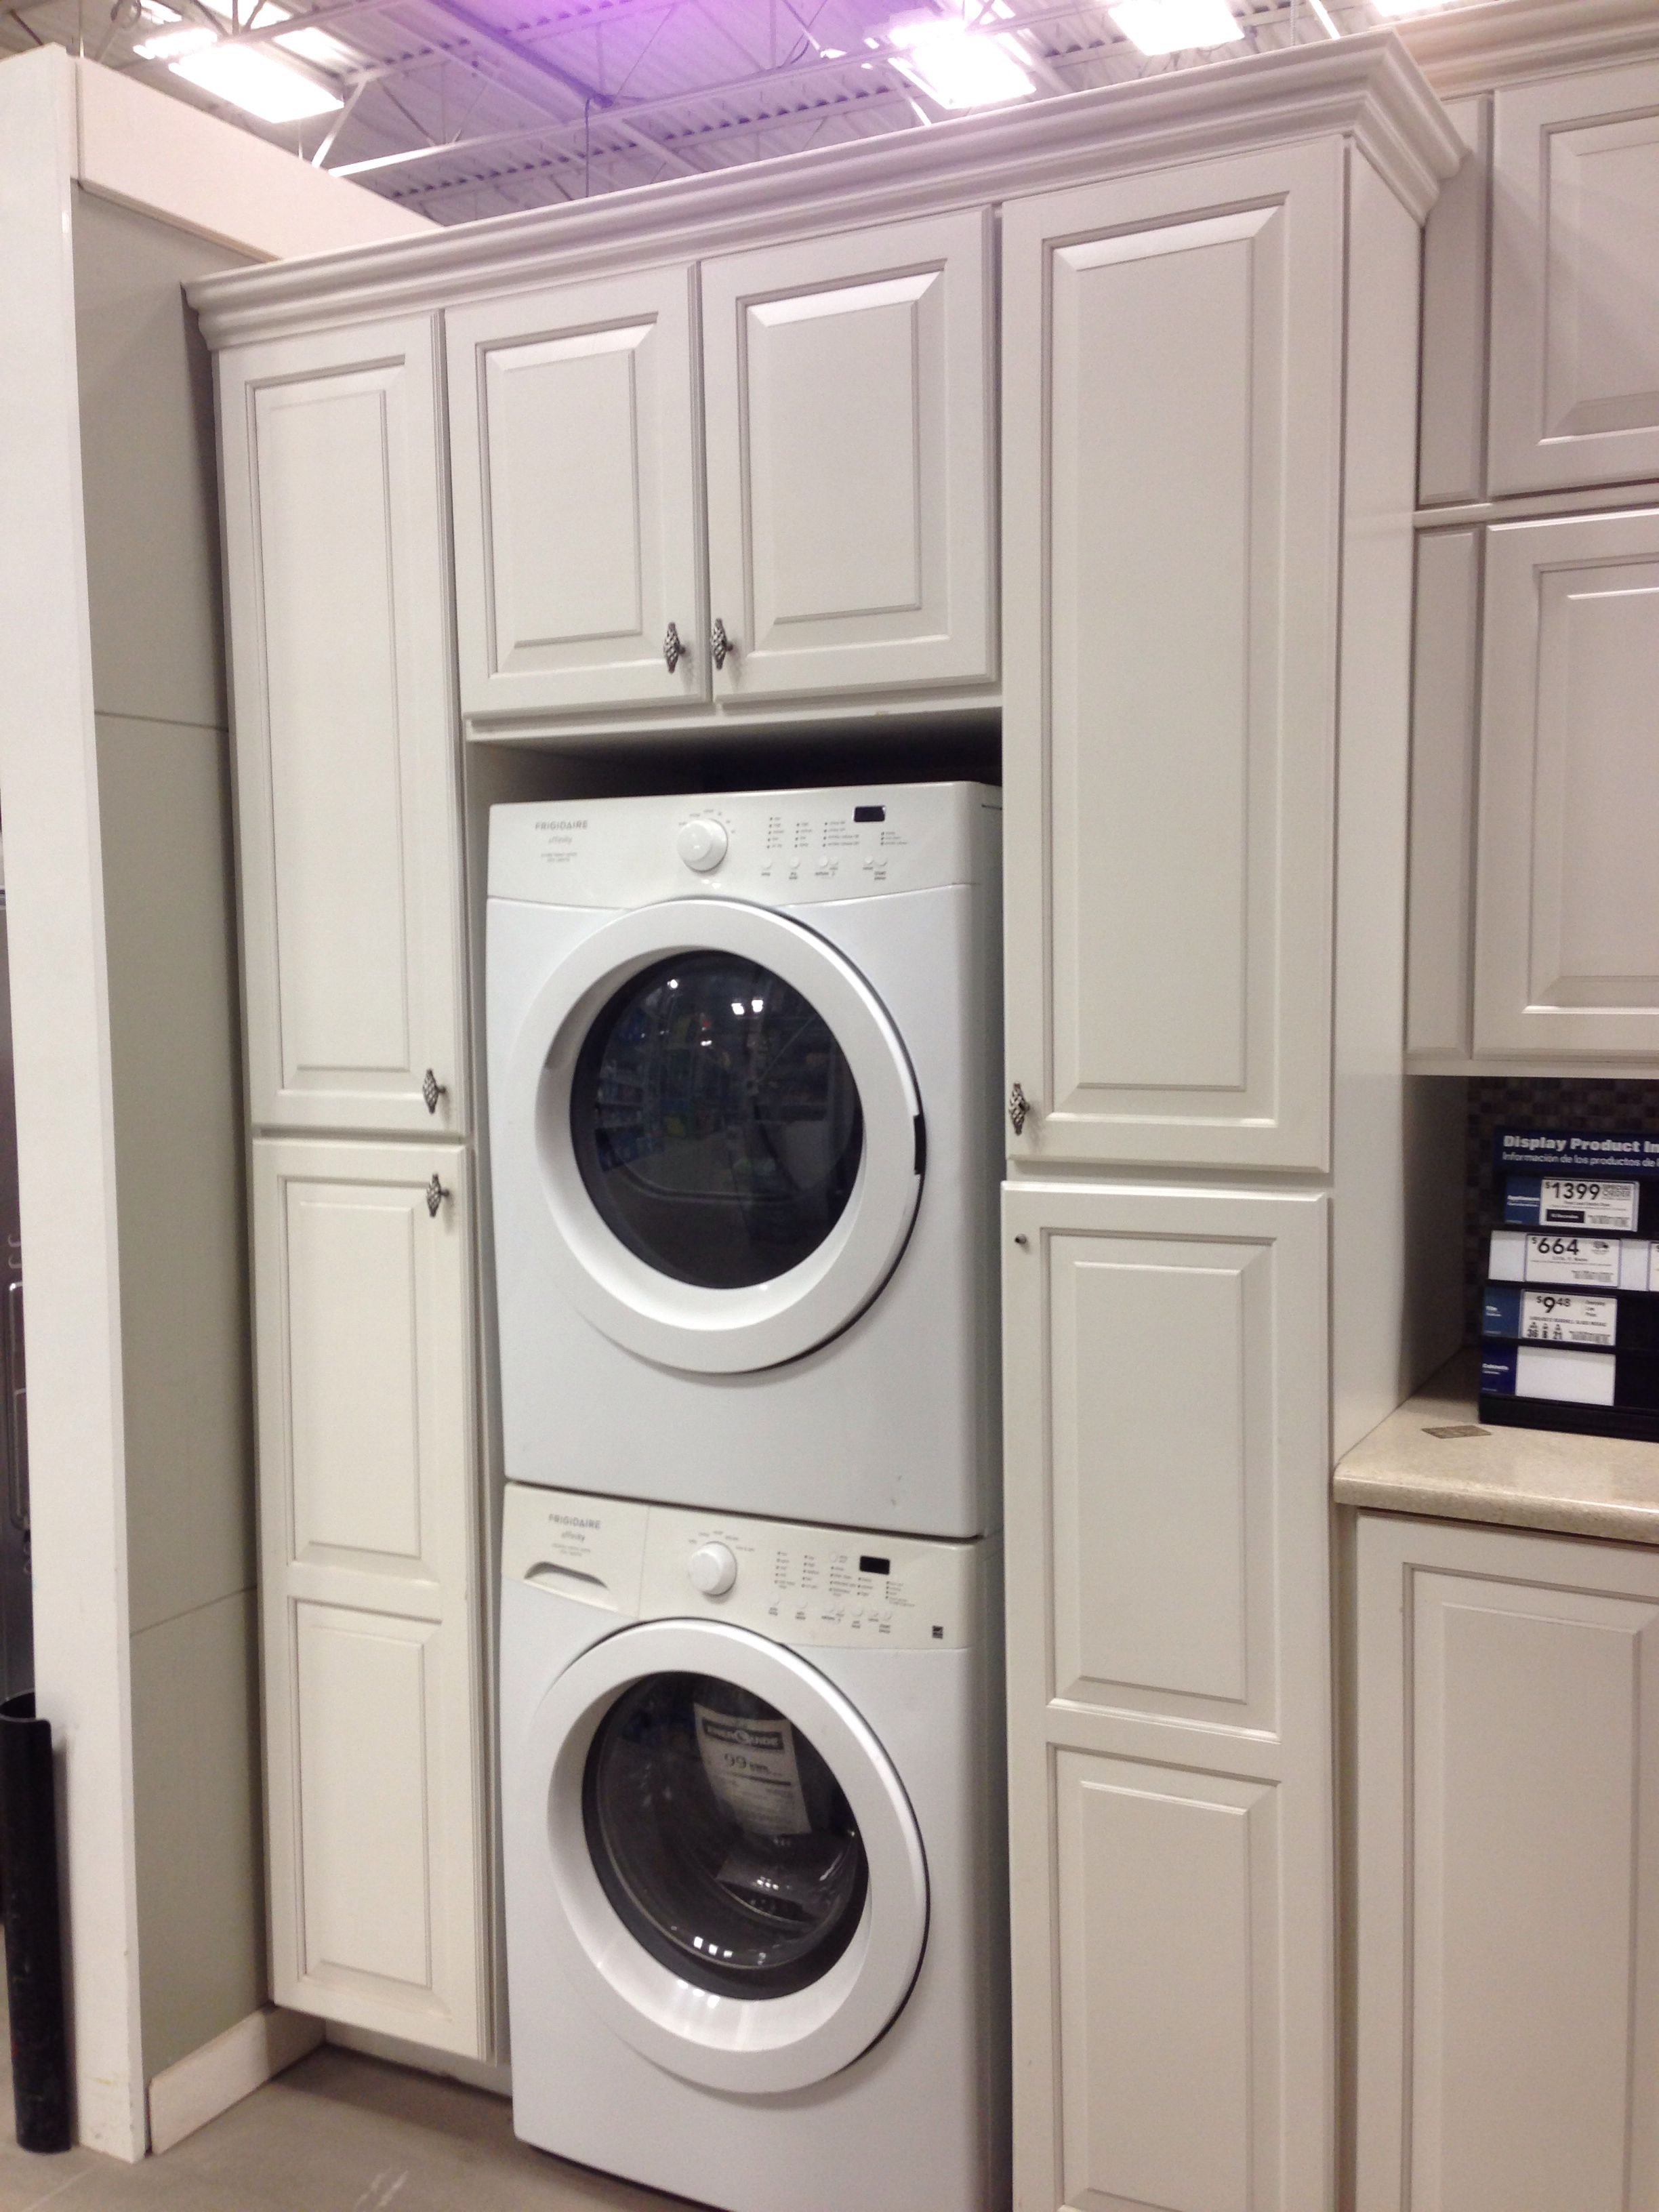 laundry room cabinets lowe s laundry room cabinets on lowe s laundry room storage cabinets id=94633